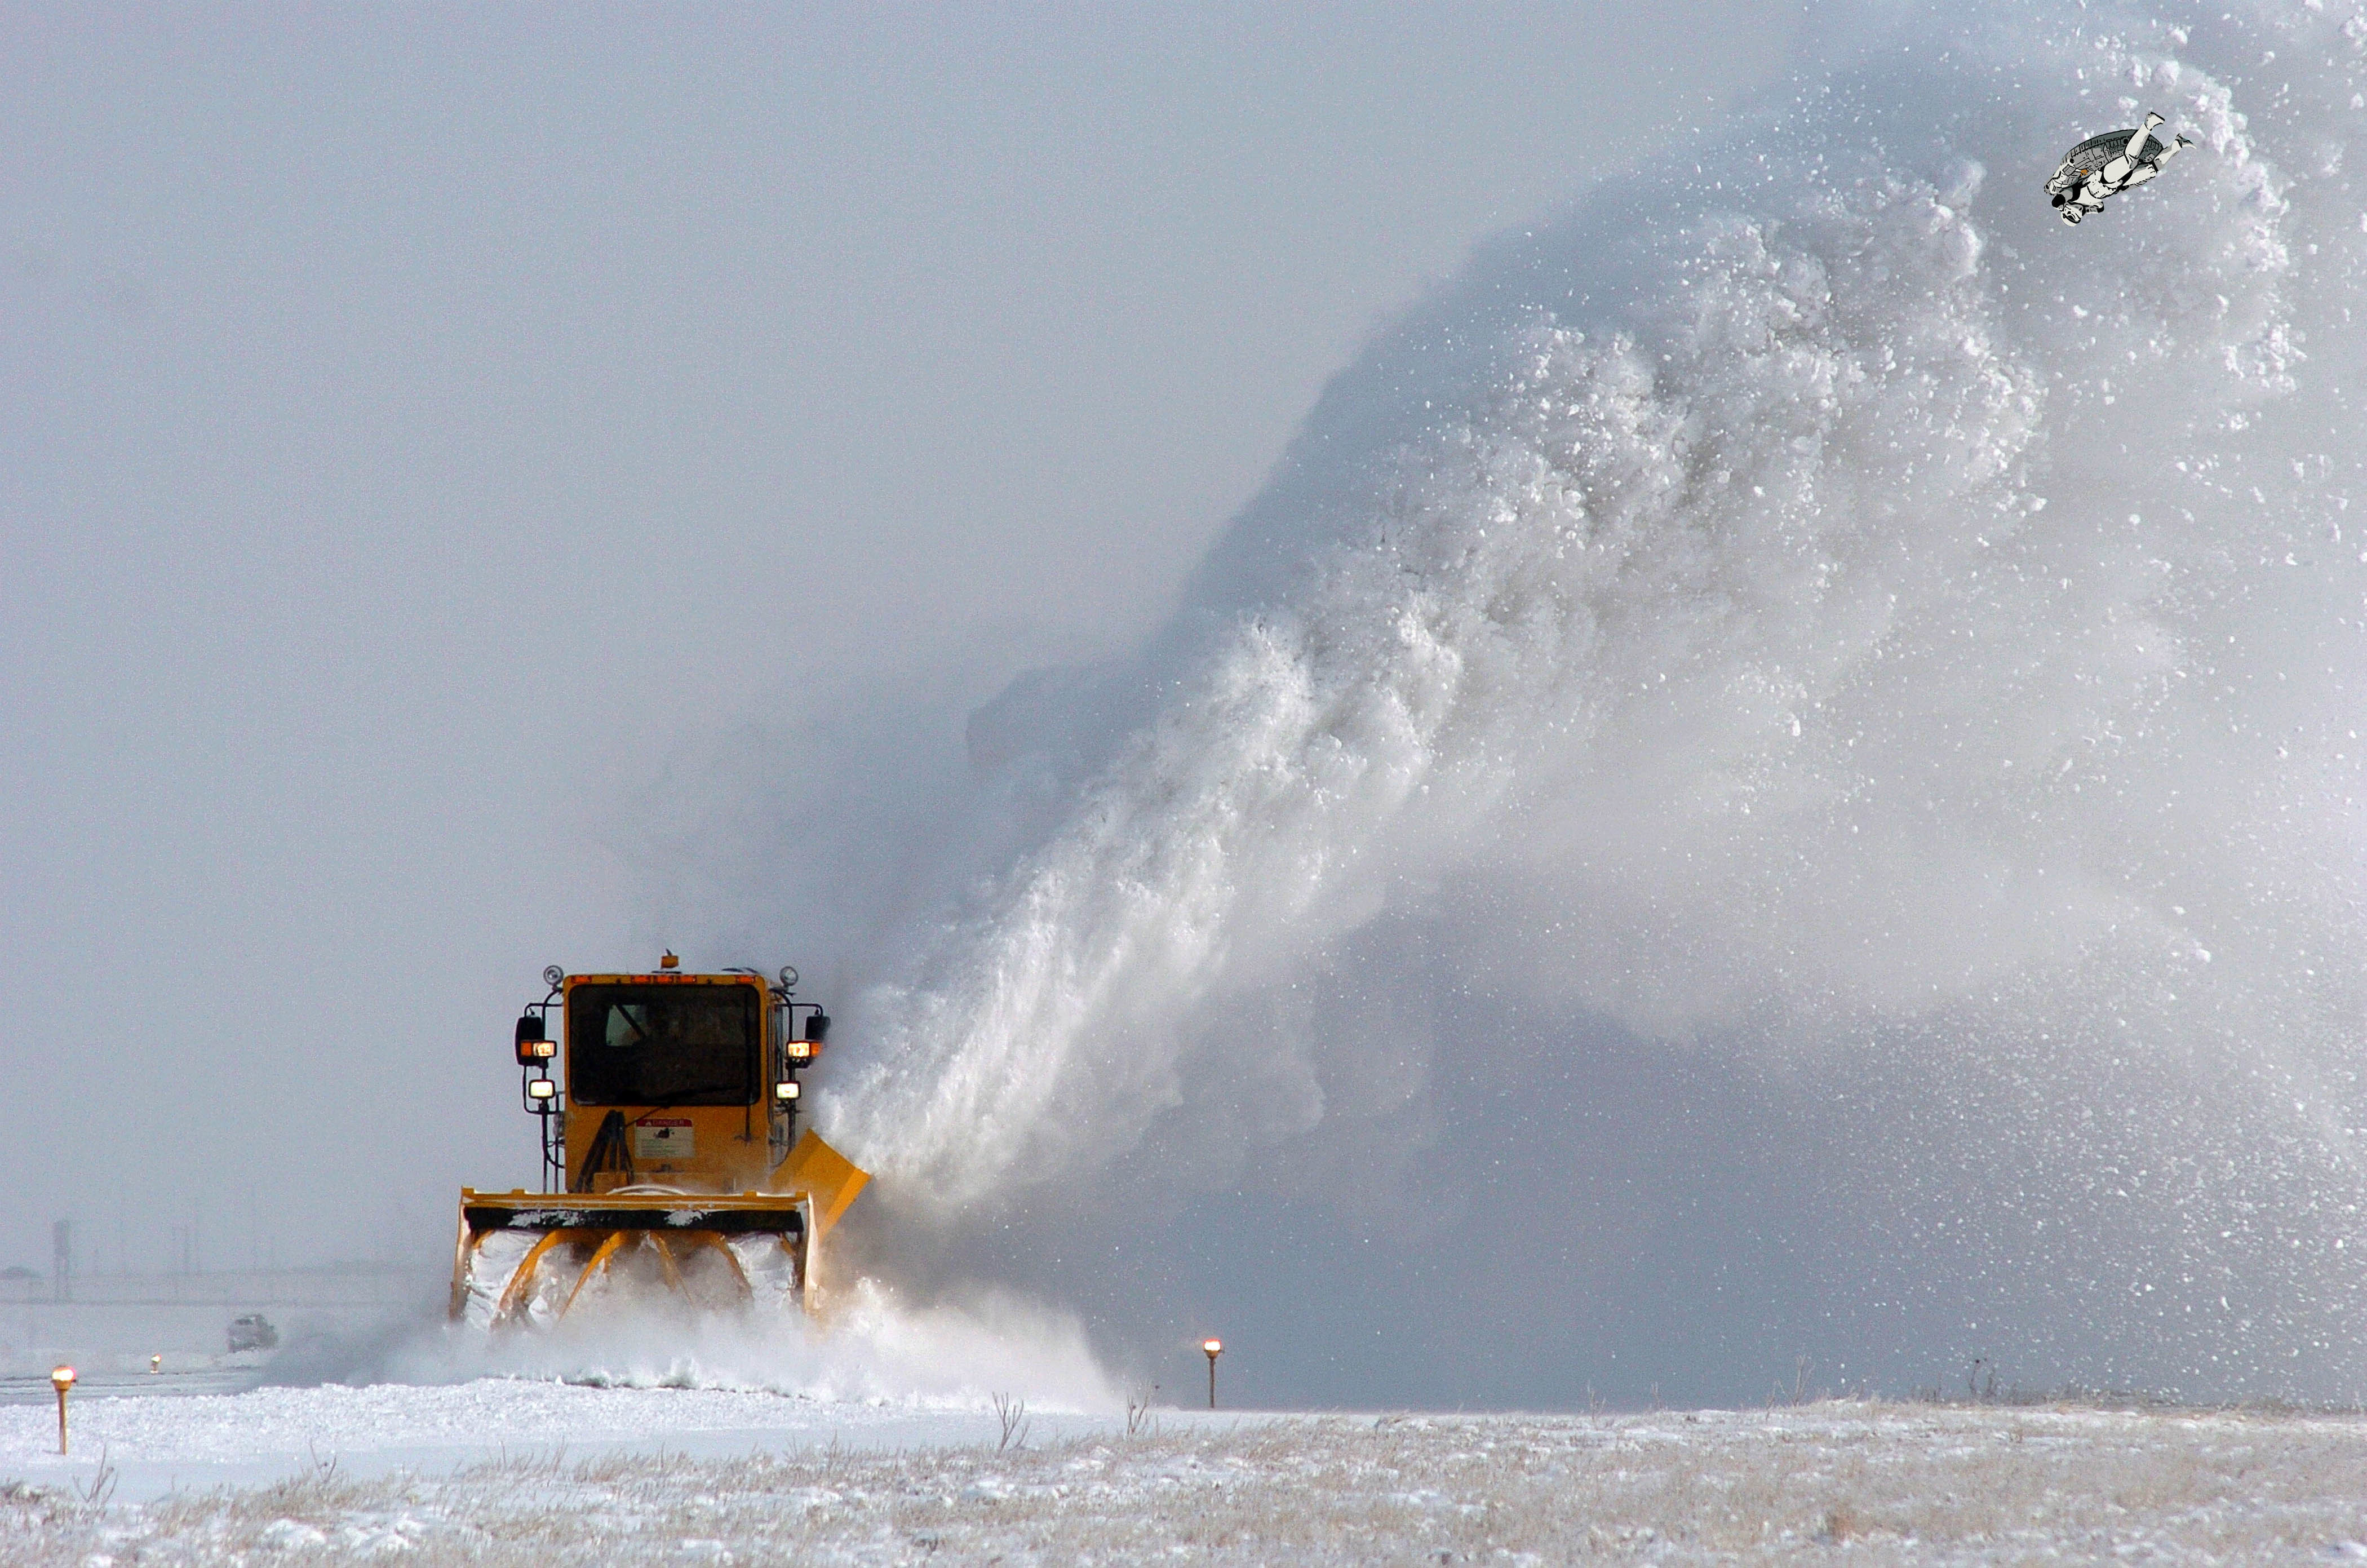 snow stormtroopers snow plow HD Wallpaper